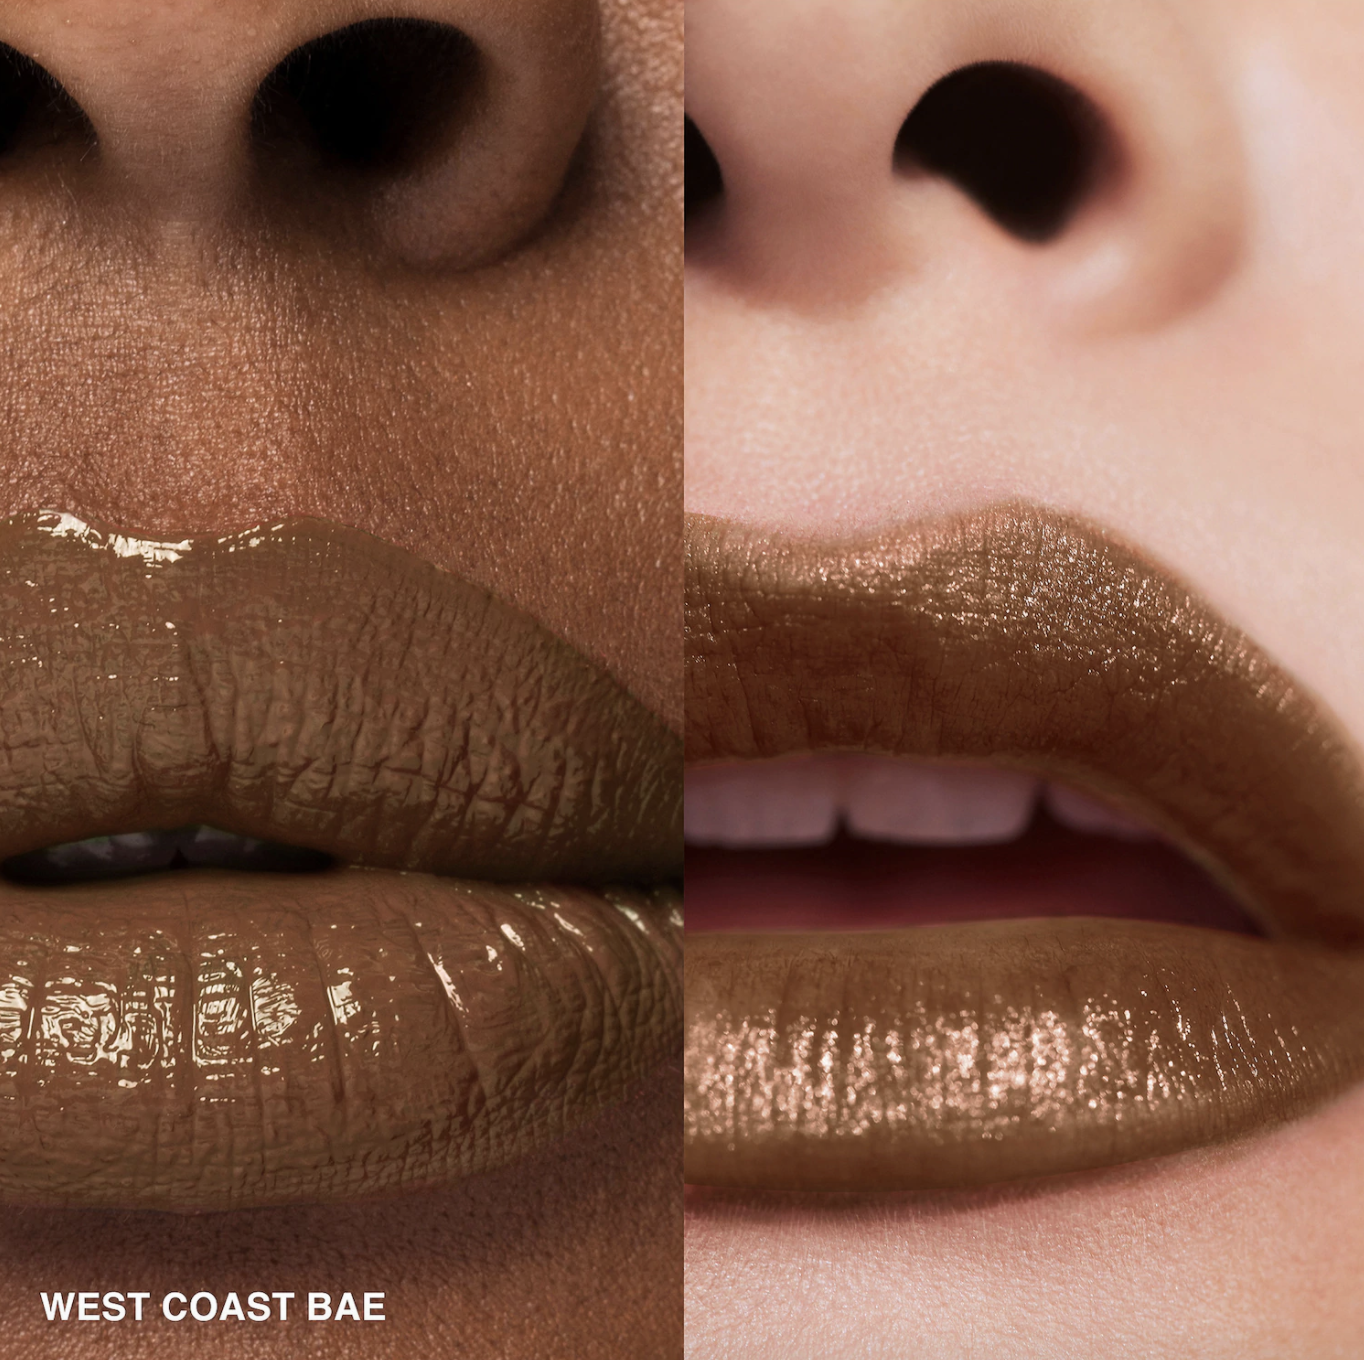 side by side images of west coast bae crushed liquid lipstick on a black model and on a white model